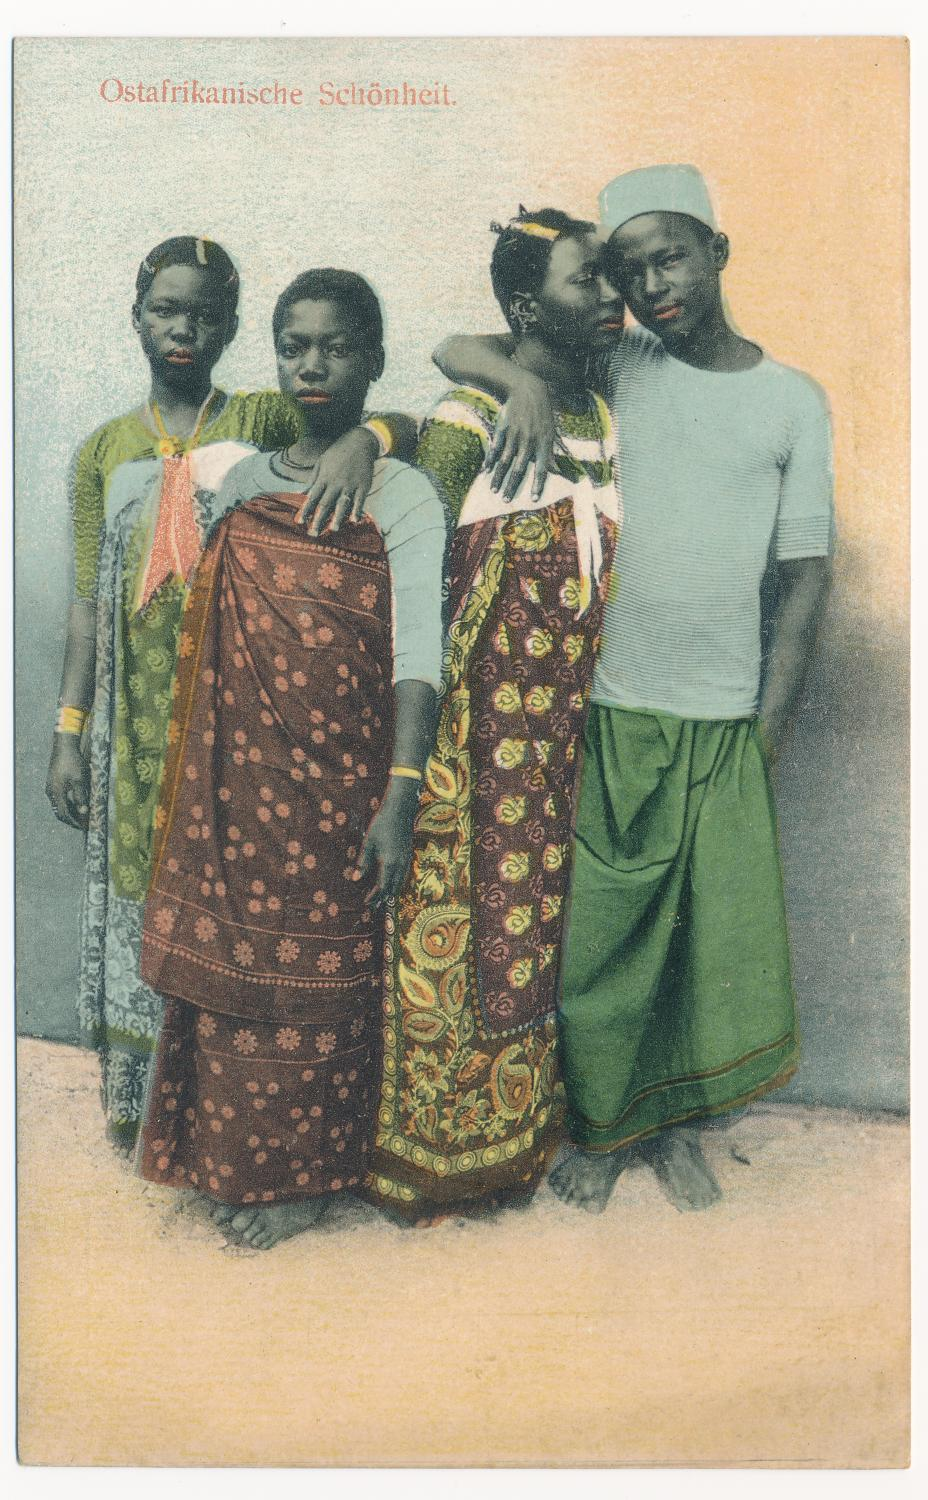 J.P. Fernandes, photographer. Ostafrikanische Schönheit (present-day Tanzania), Photograph before 1900; postcard printed ca. 1912. Colored collotype on postcard stock. Collection of Christraud M. Geary.